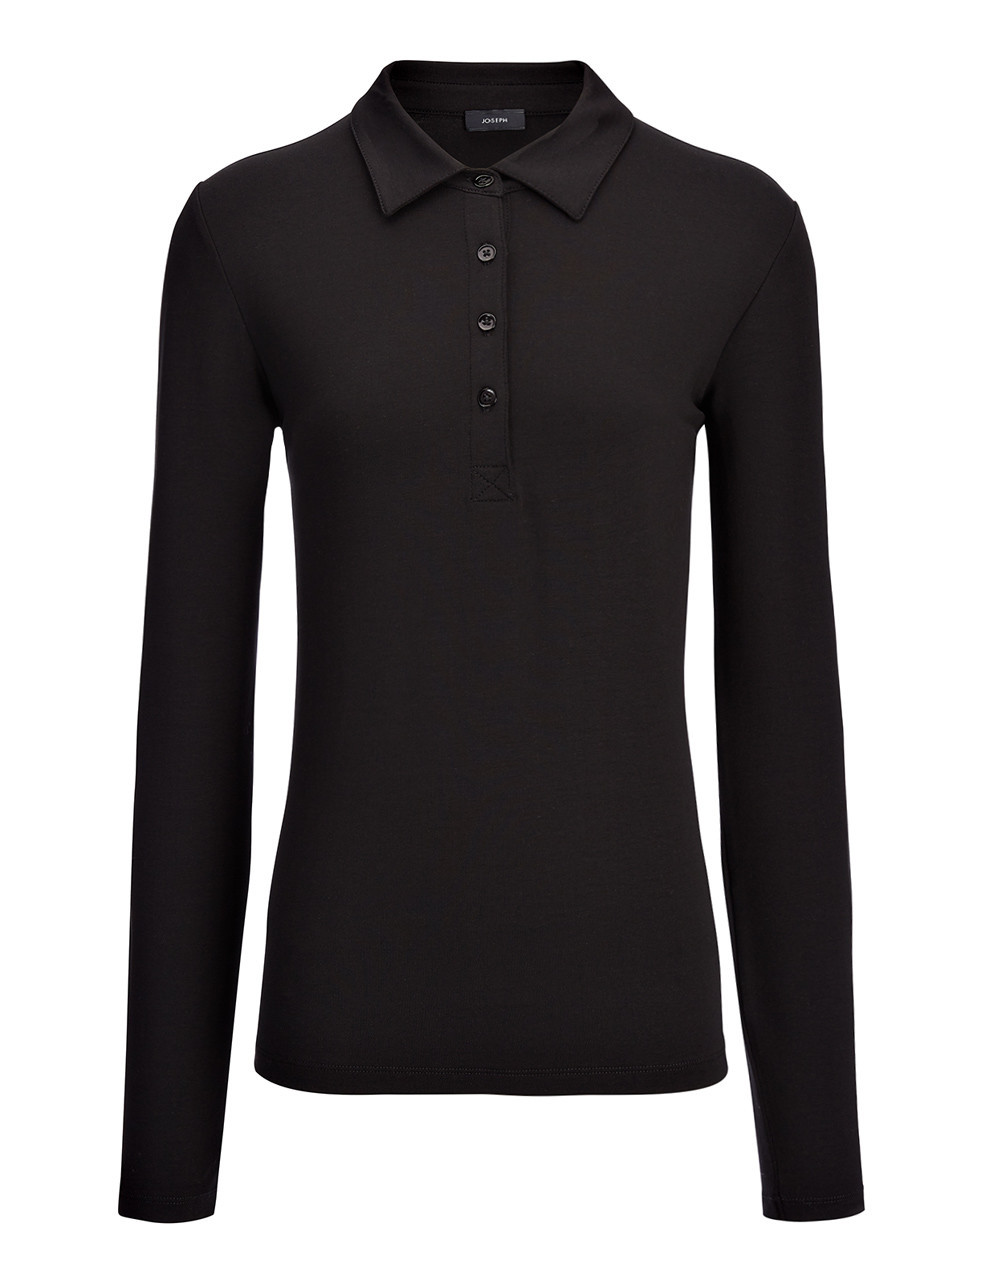 Cotton Lyocell Stretch Polo In Black - neckline: shirt collar/peter pan/zip with opening; pattern: plain; style: polo shirt; predominant colour: black; occasions: casual; length: standard; fibres: cotton - stretch; fit: body skimming; sleeve length: long sleeve; sleeve style: standard; pattern type: fabric; texture group: jersey - stretchy/drapey; season: s/s 2016